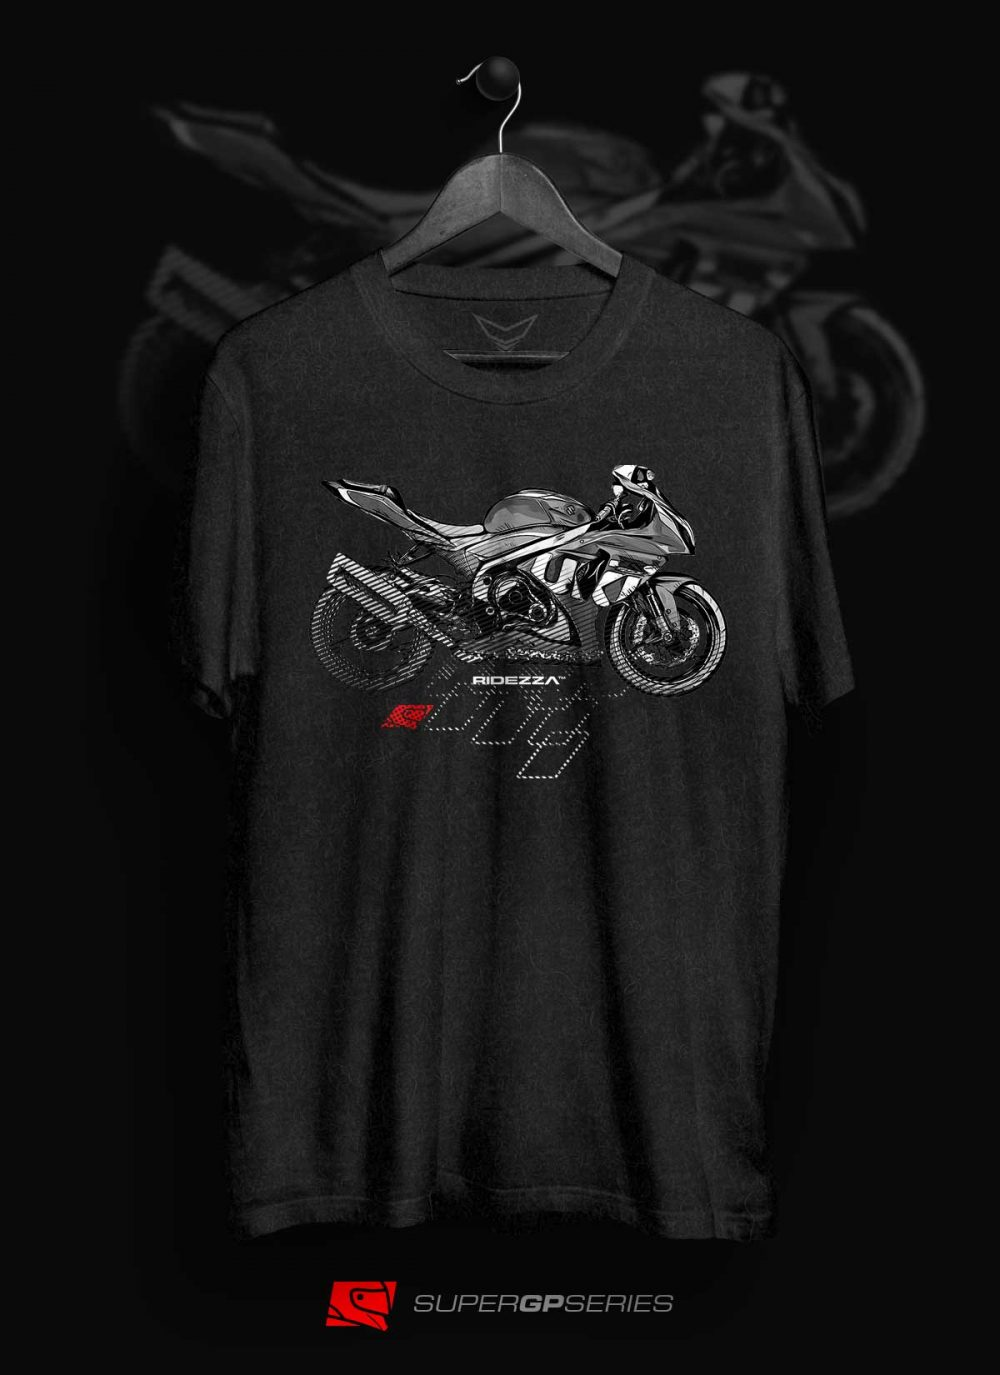 Ridezza GSXR Srad SuperGP Series T-Shirt